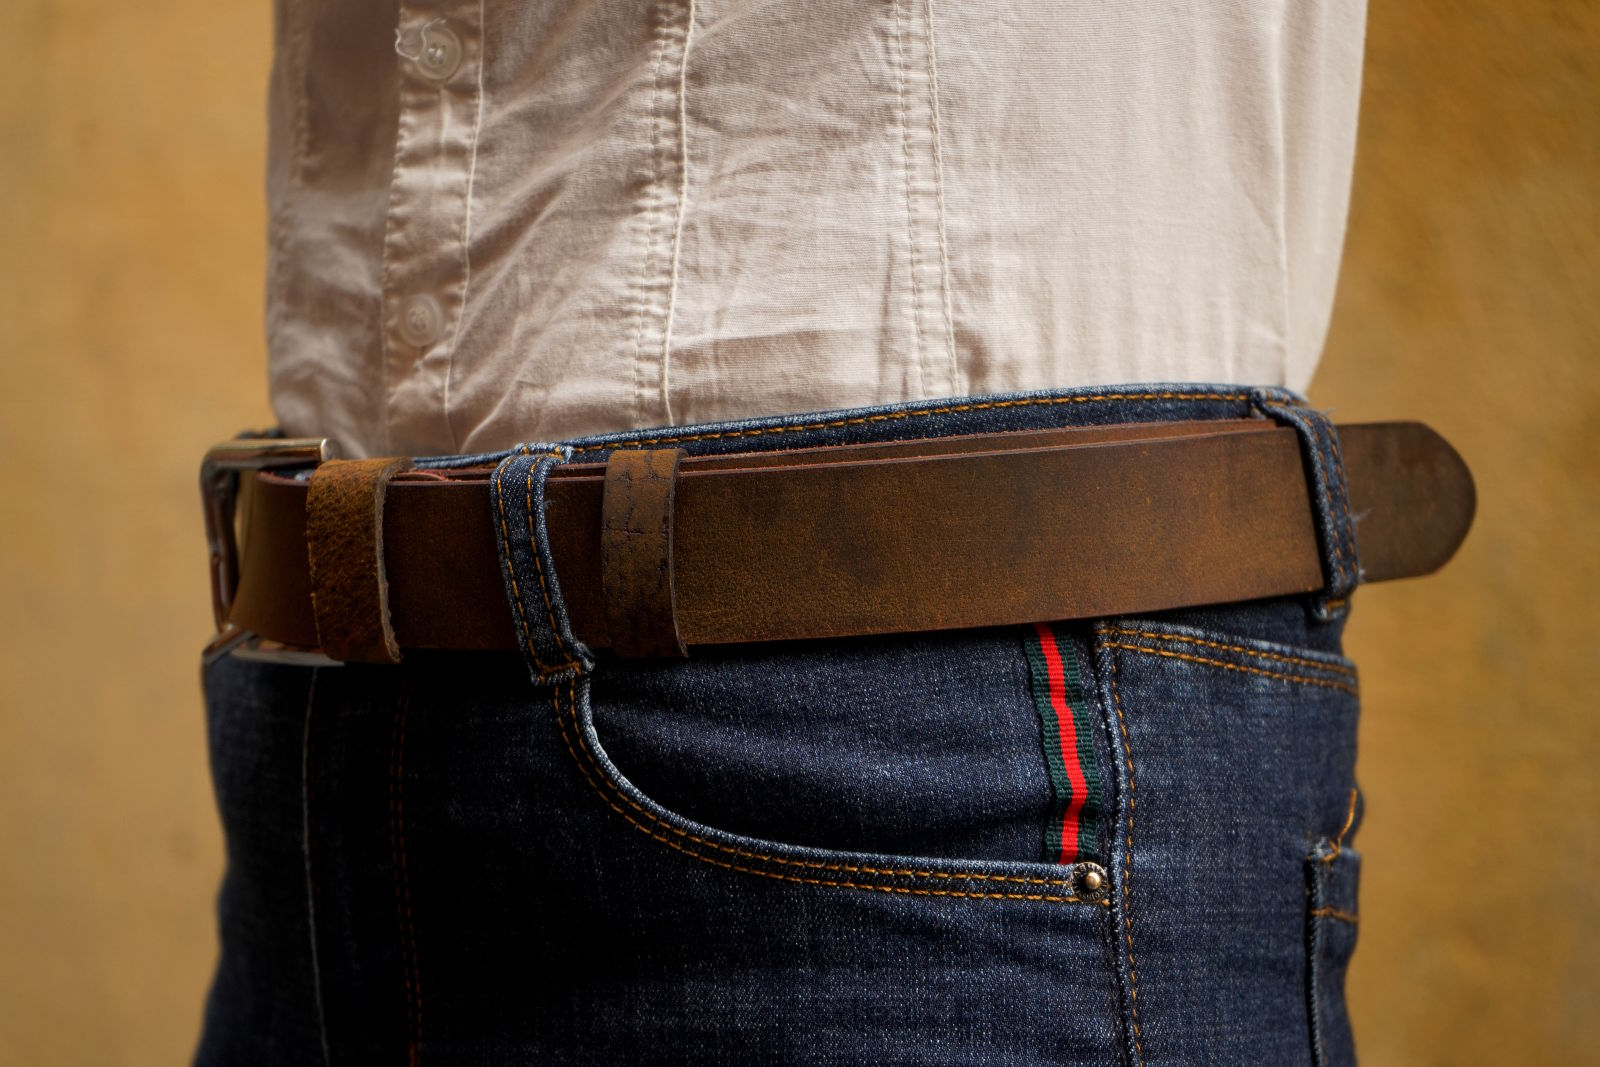 Hoi An Real Leather - Da Bao Real Leather: Brown vintage style buffalo leather belt